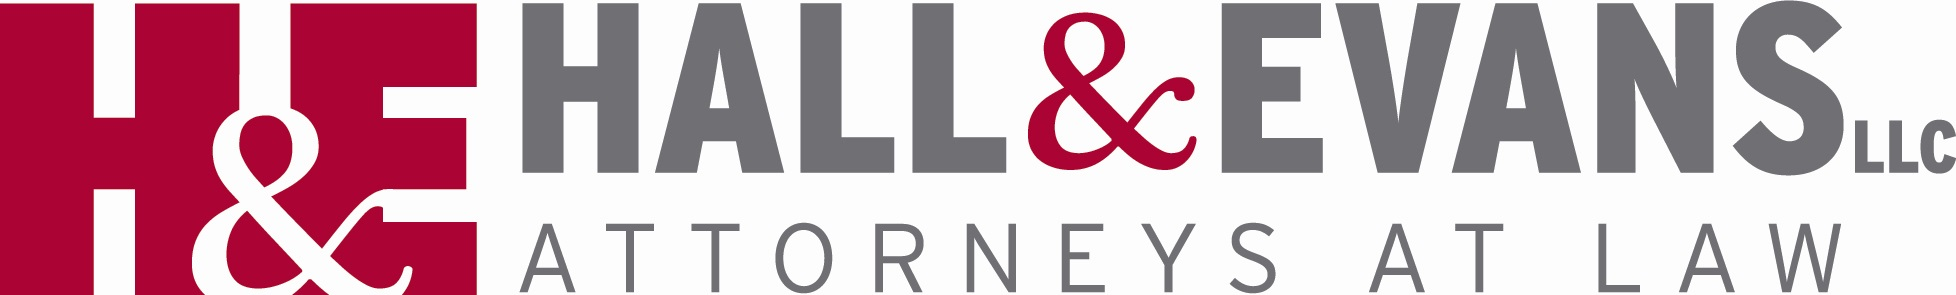 hall and evans logo